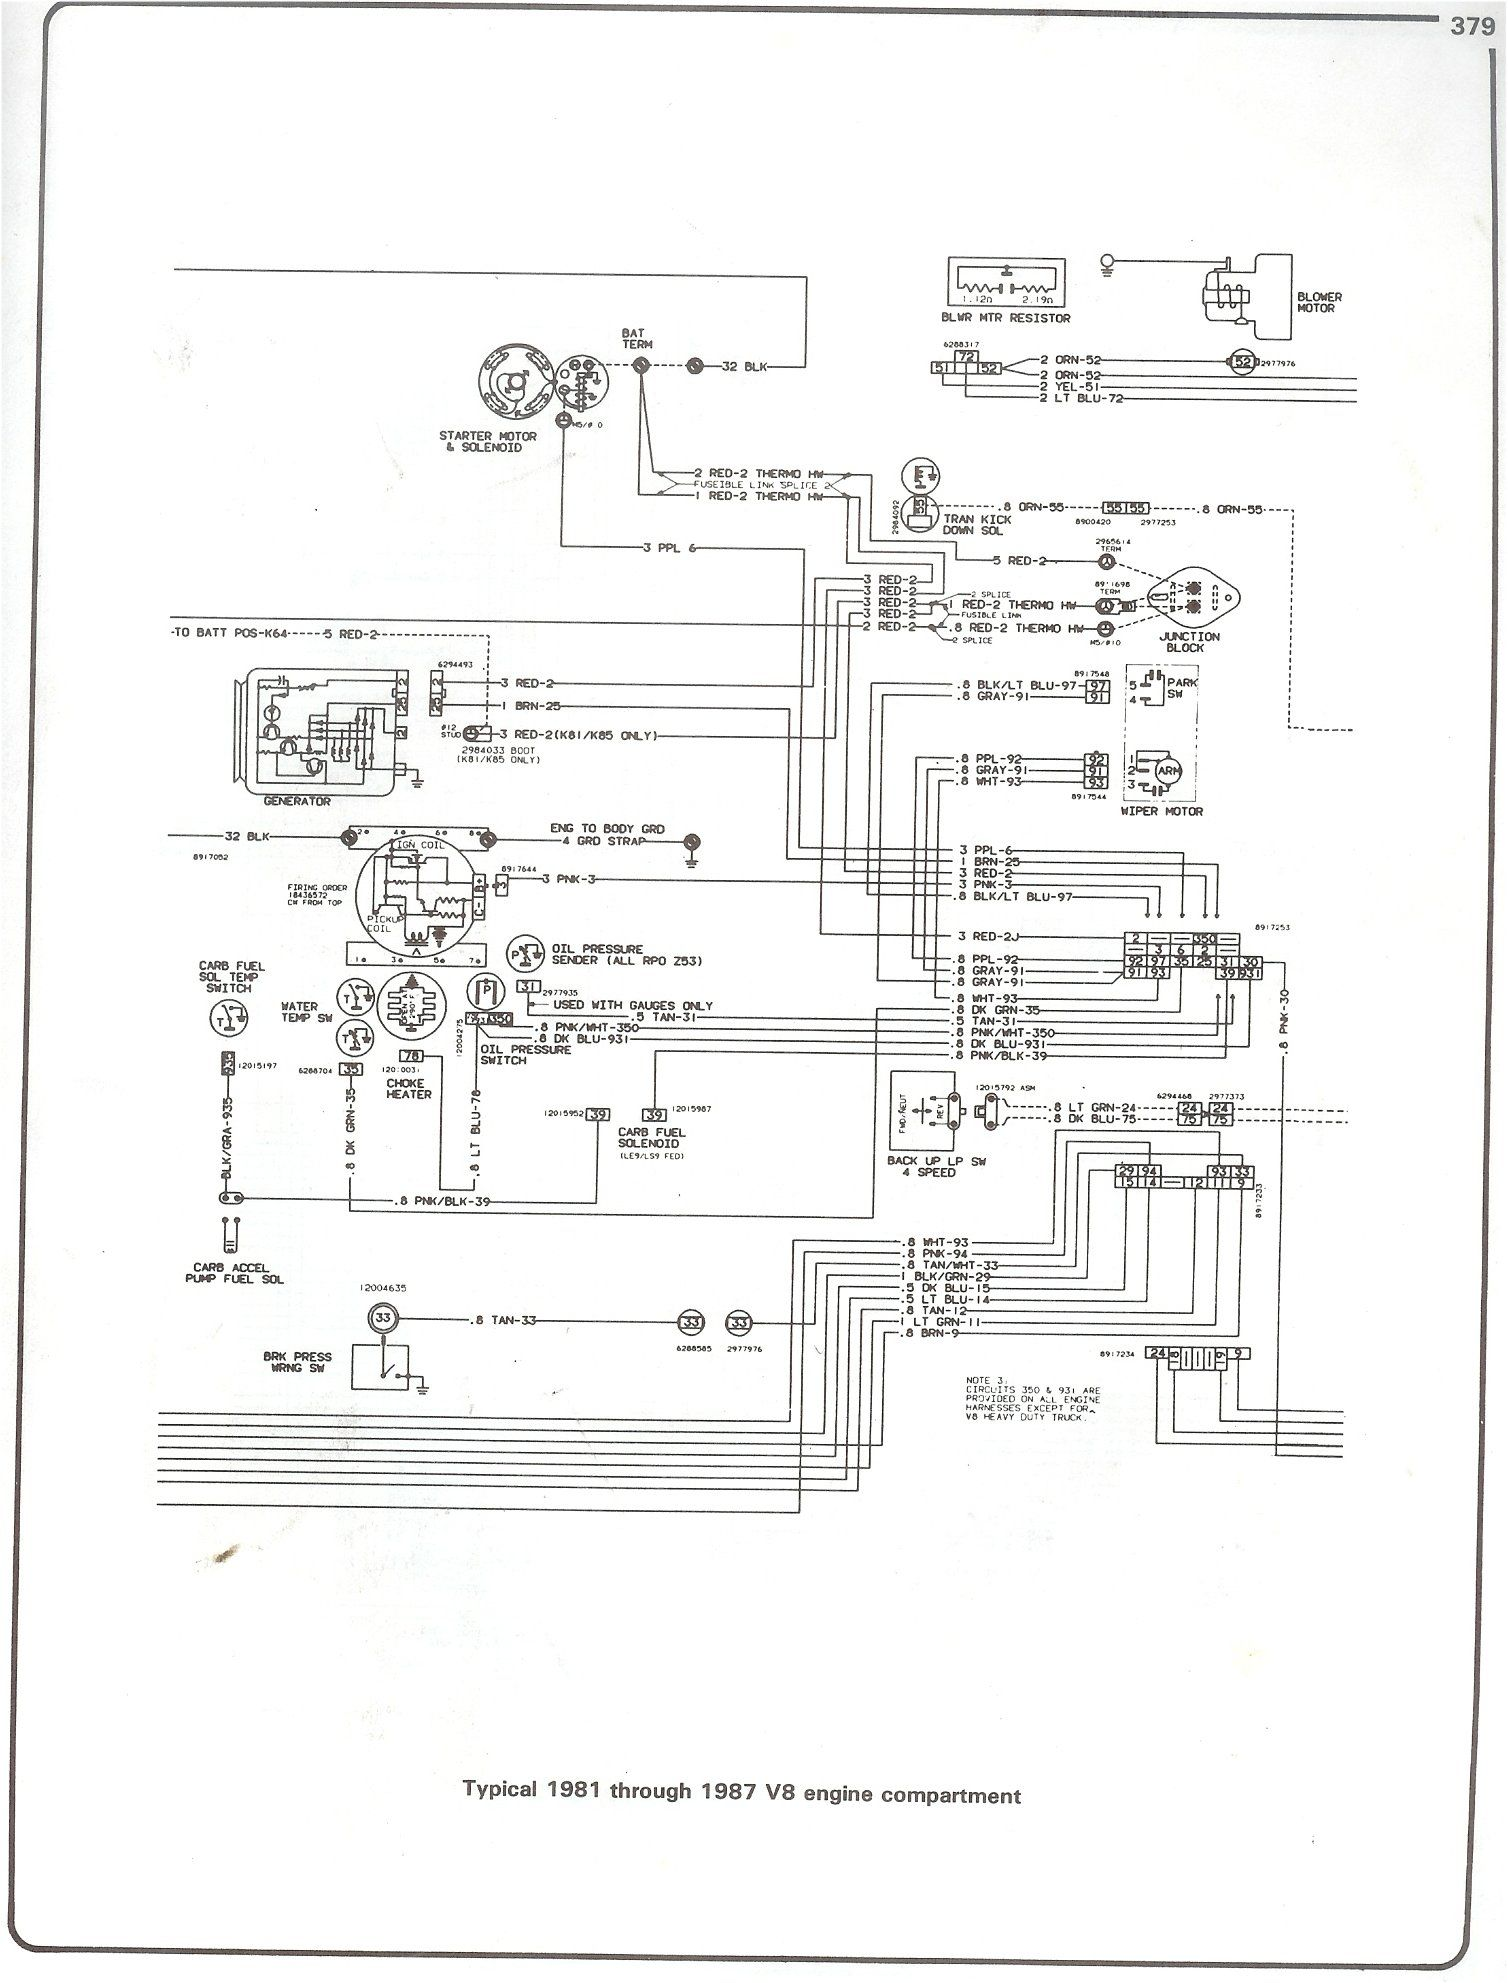 medium resolution of 1987 chevy c10 fuse diagram wiring diagrams bib 87 chevy silverado fuse box diagram 1987 chevy